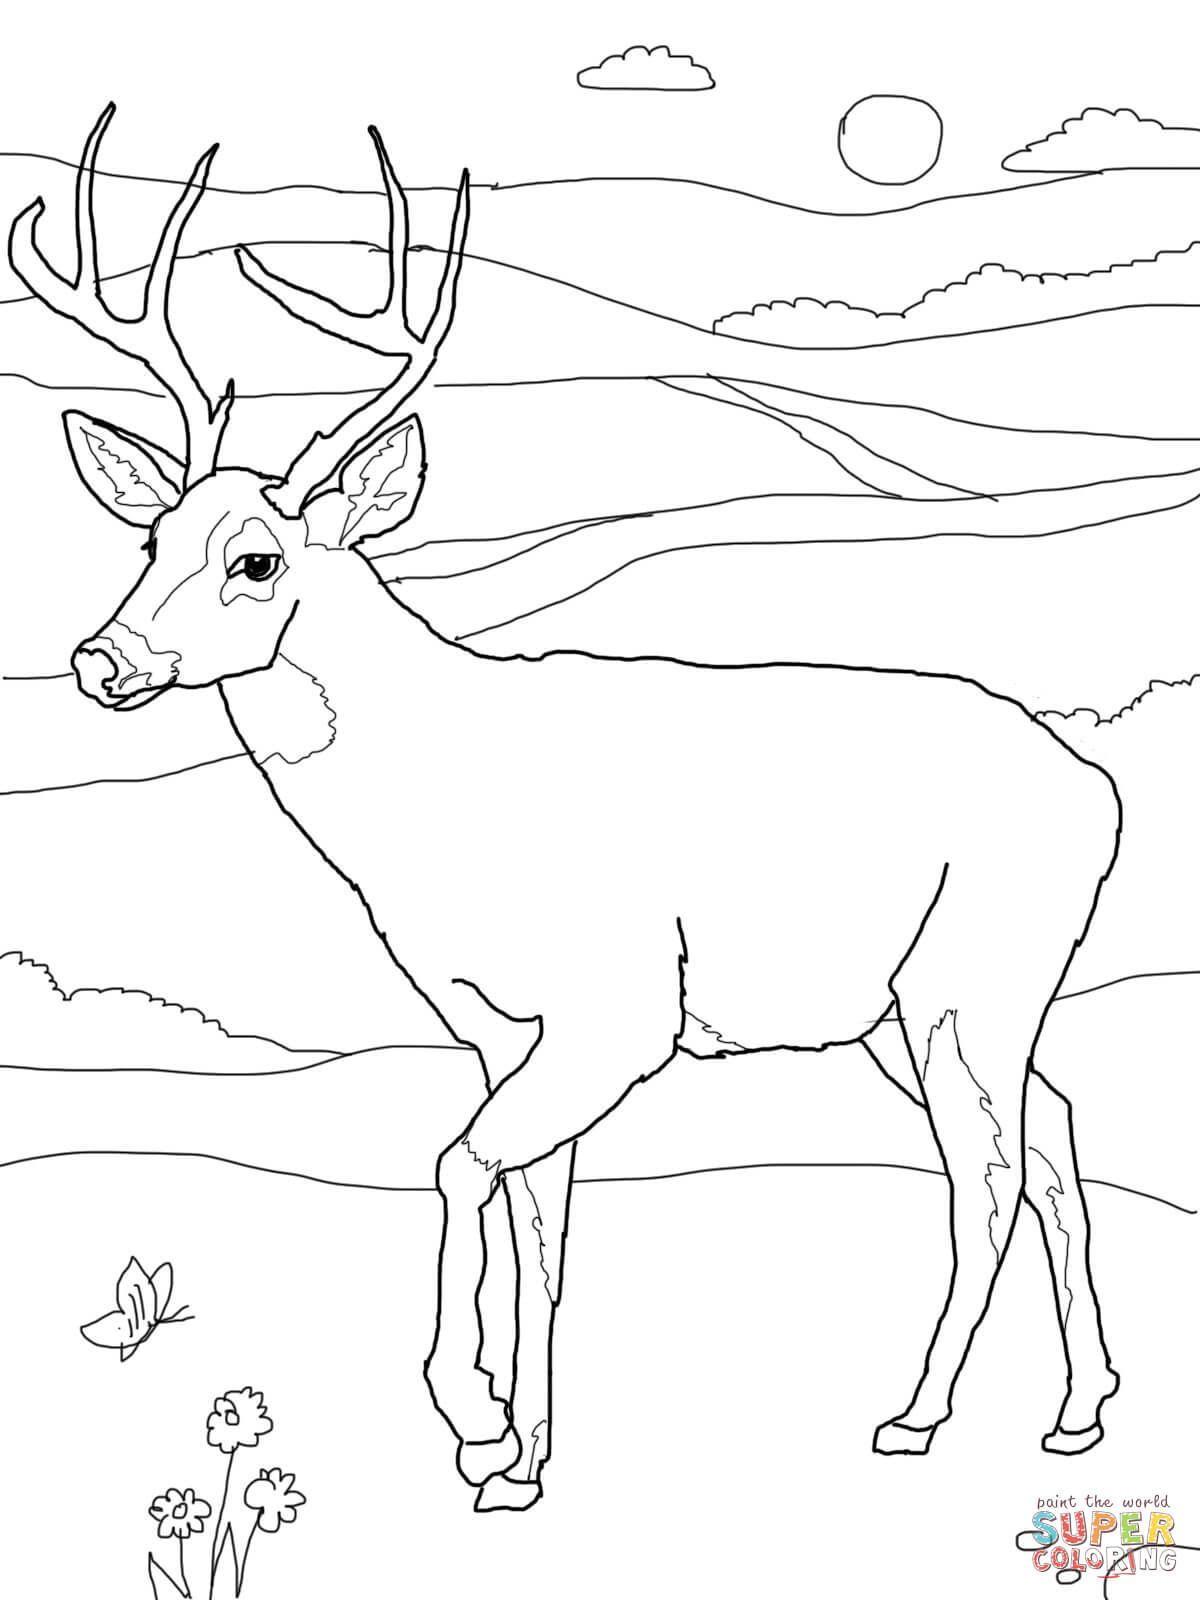 deer-coloring-page-0032-q1